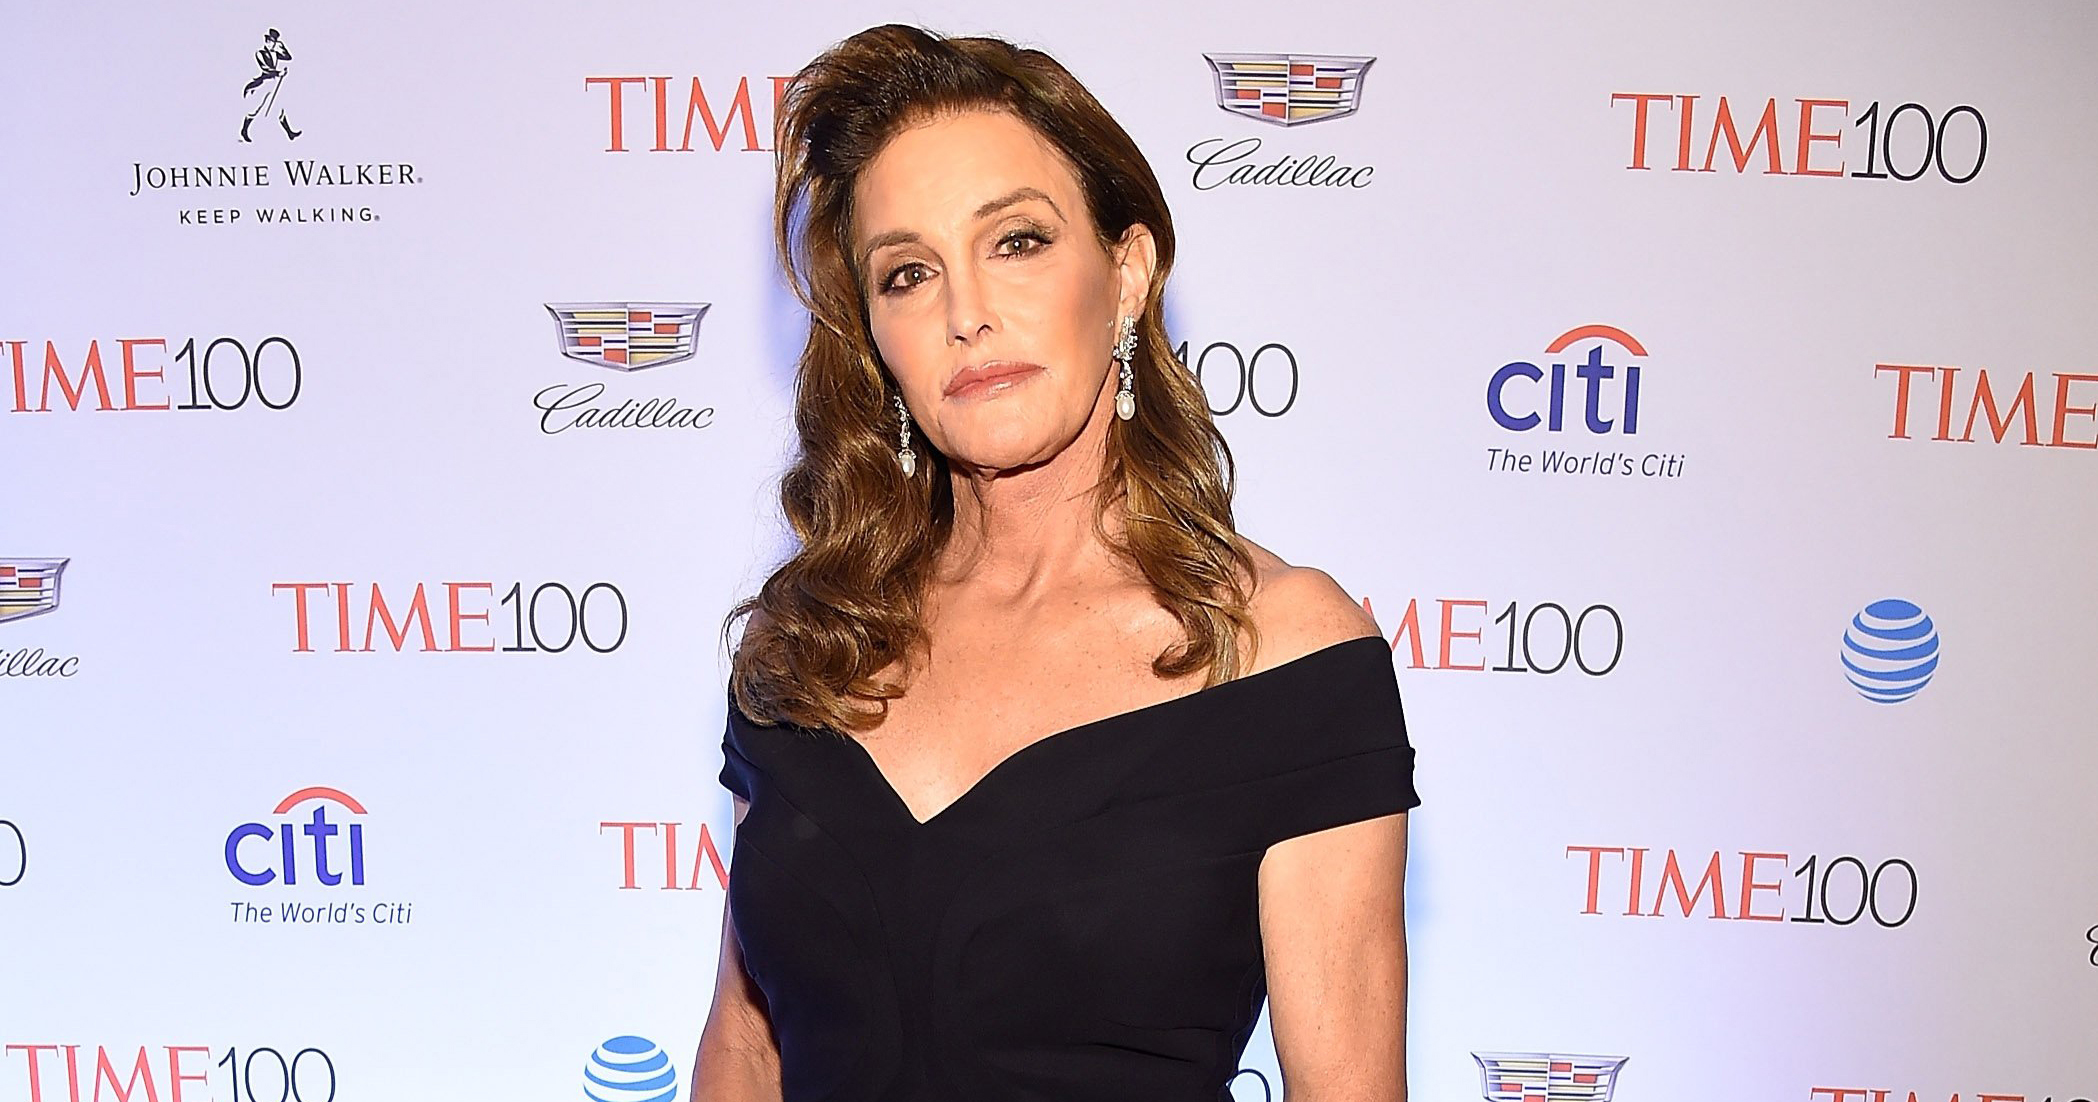 Caitlyn Jenner at the                       TIME 100 Gala in New York on April 26, 2016.